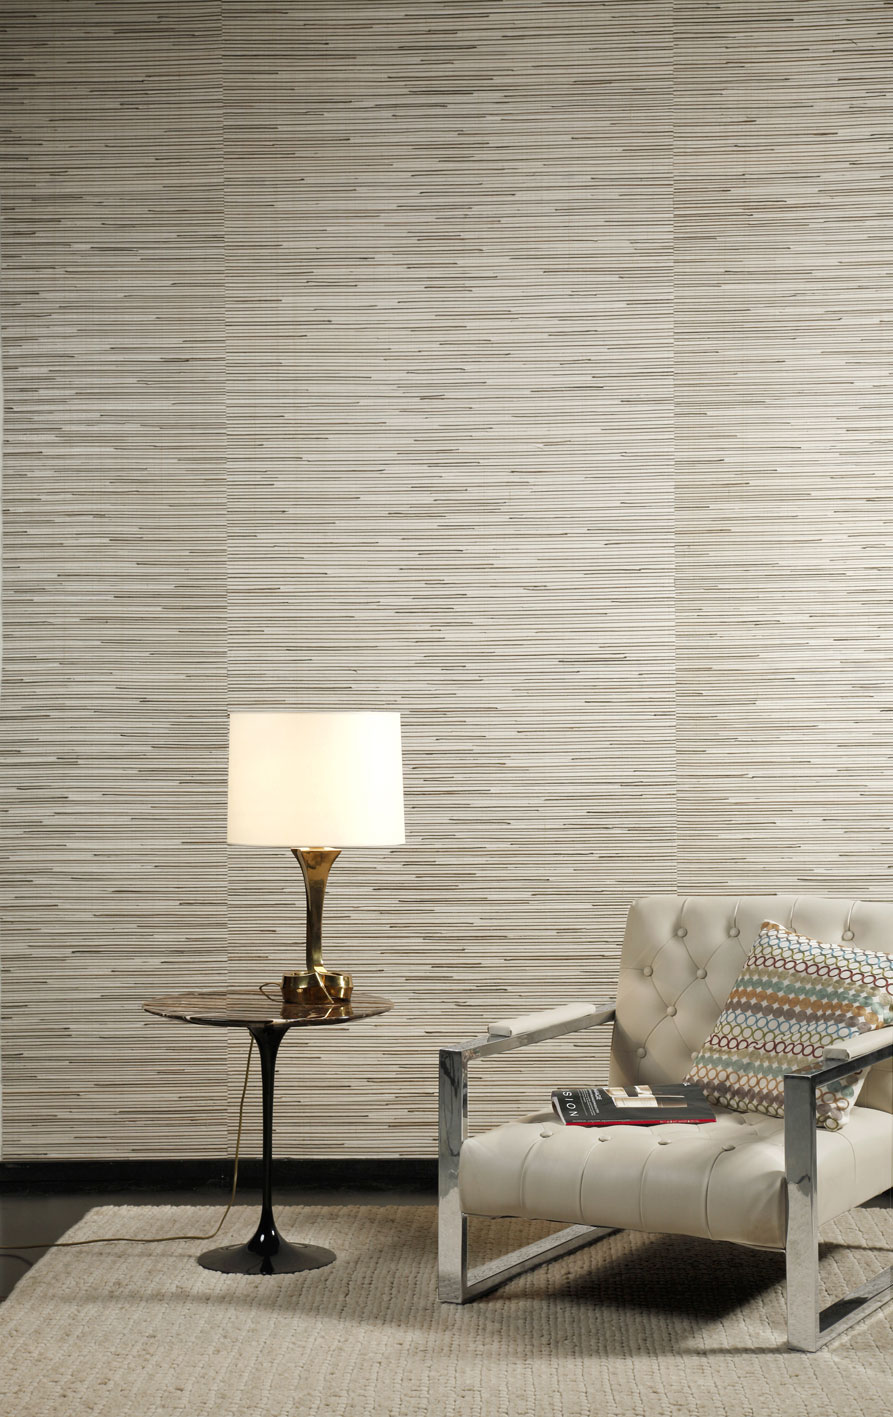 Natural Seagrass wall covering from Urbane Living, around £26.50 per m2. www.urbaneliving.co.uk